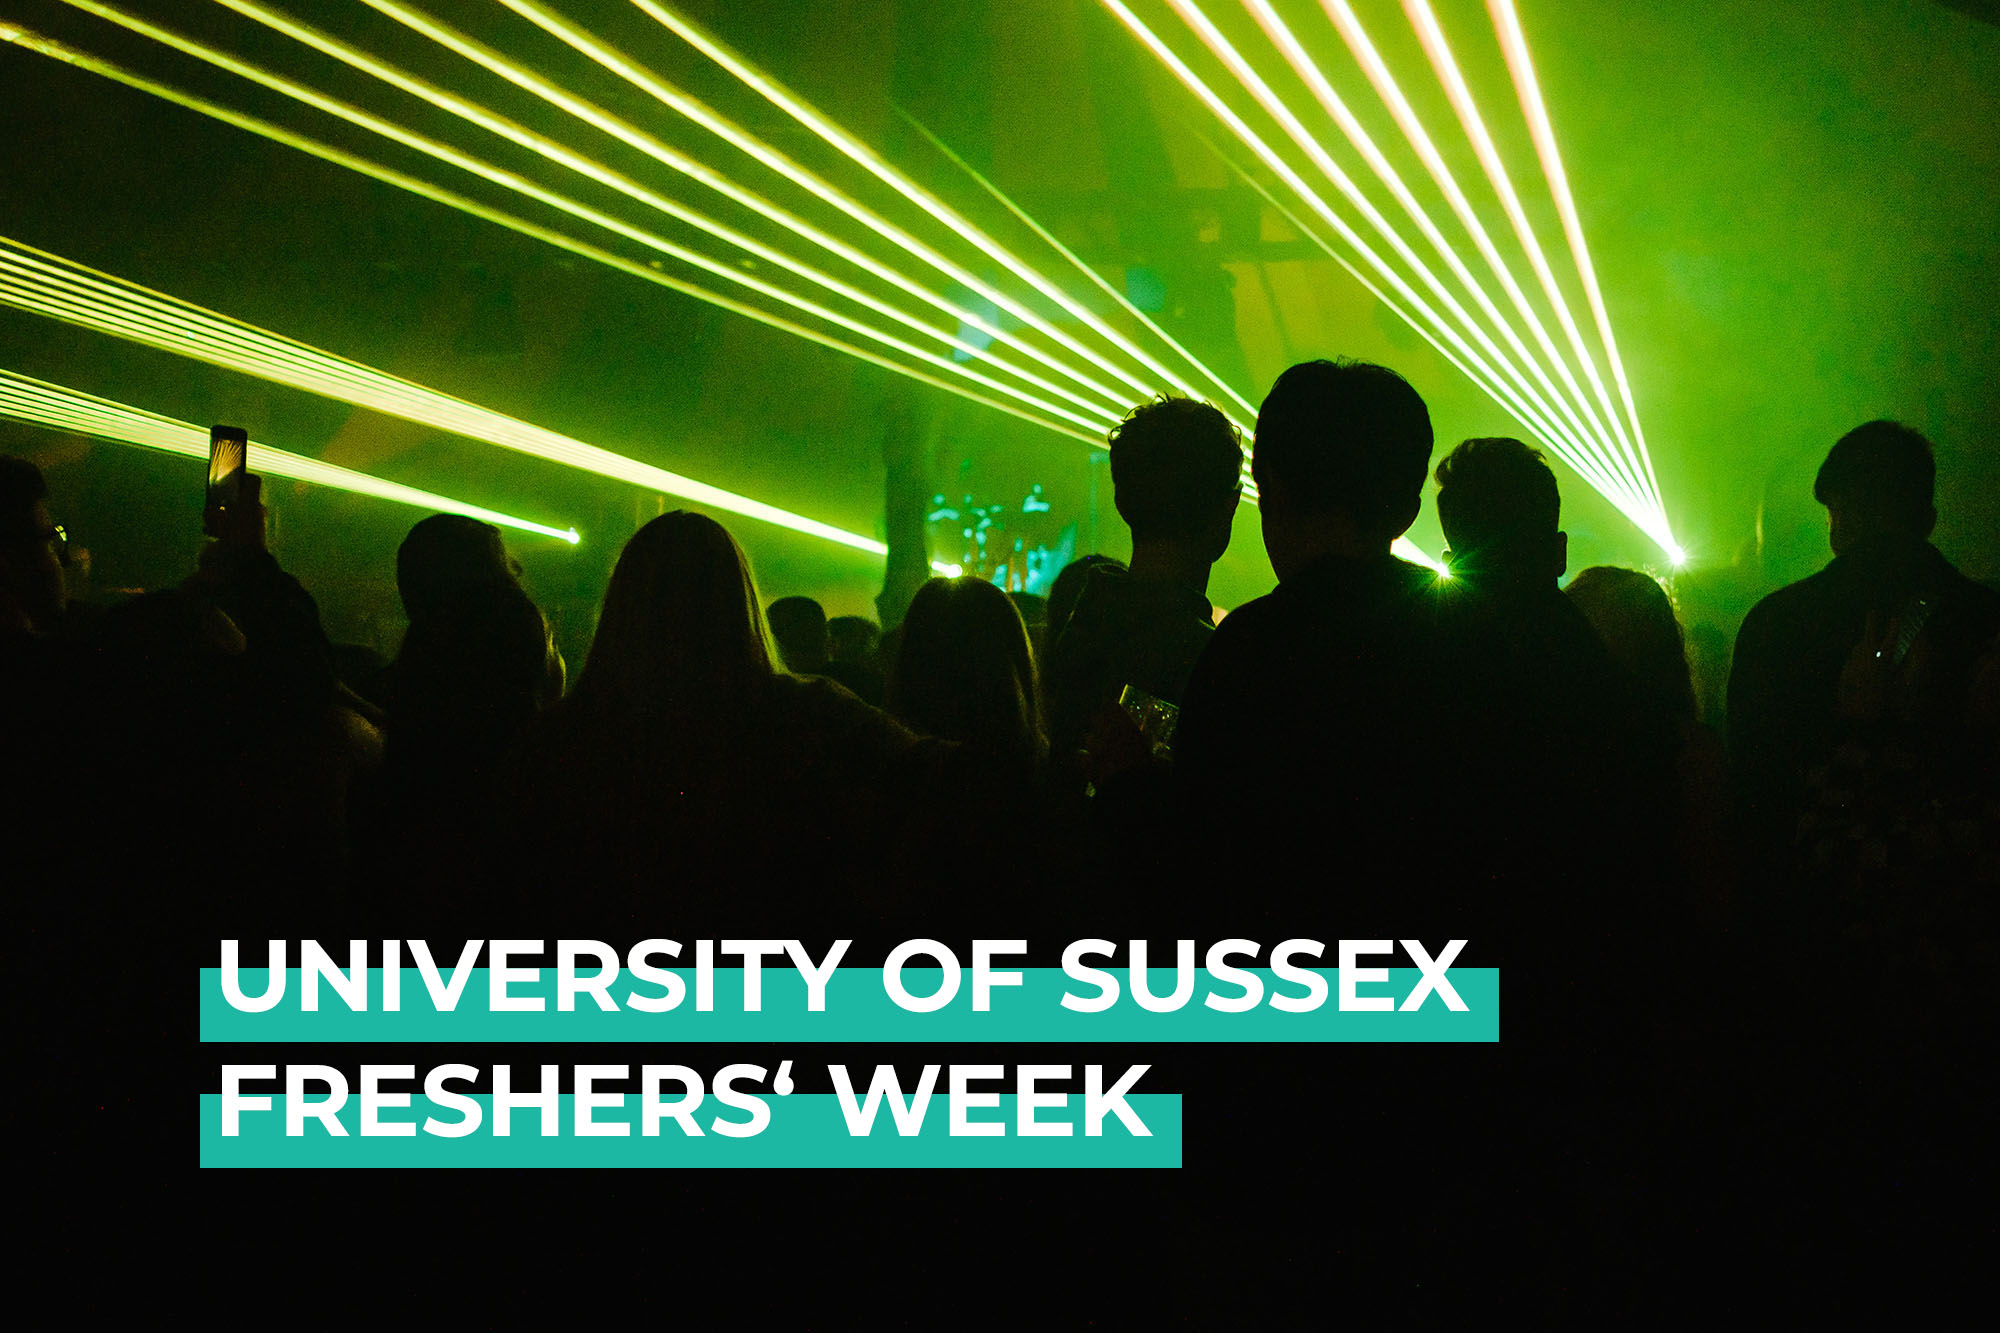 university of sussex freshers' week commercial work